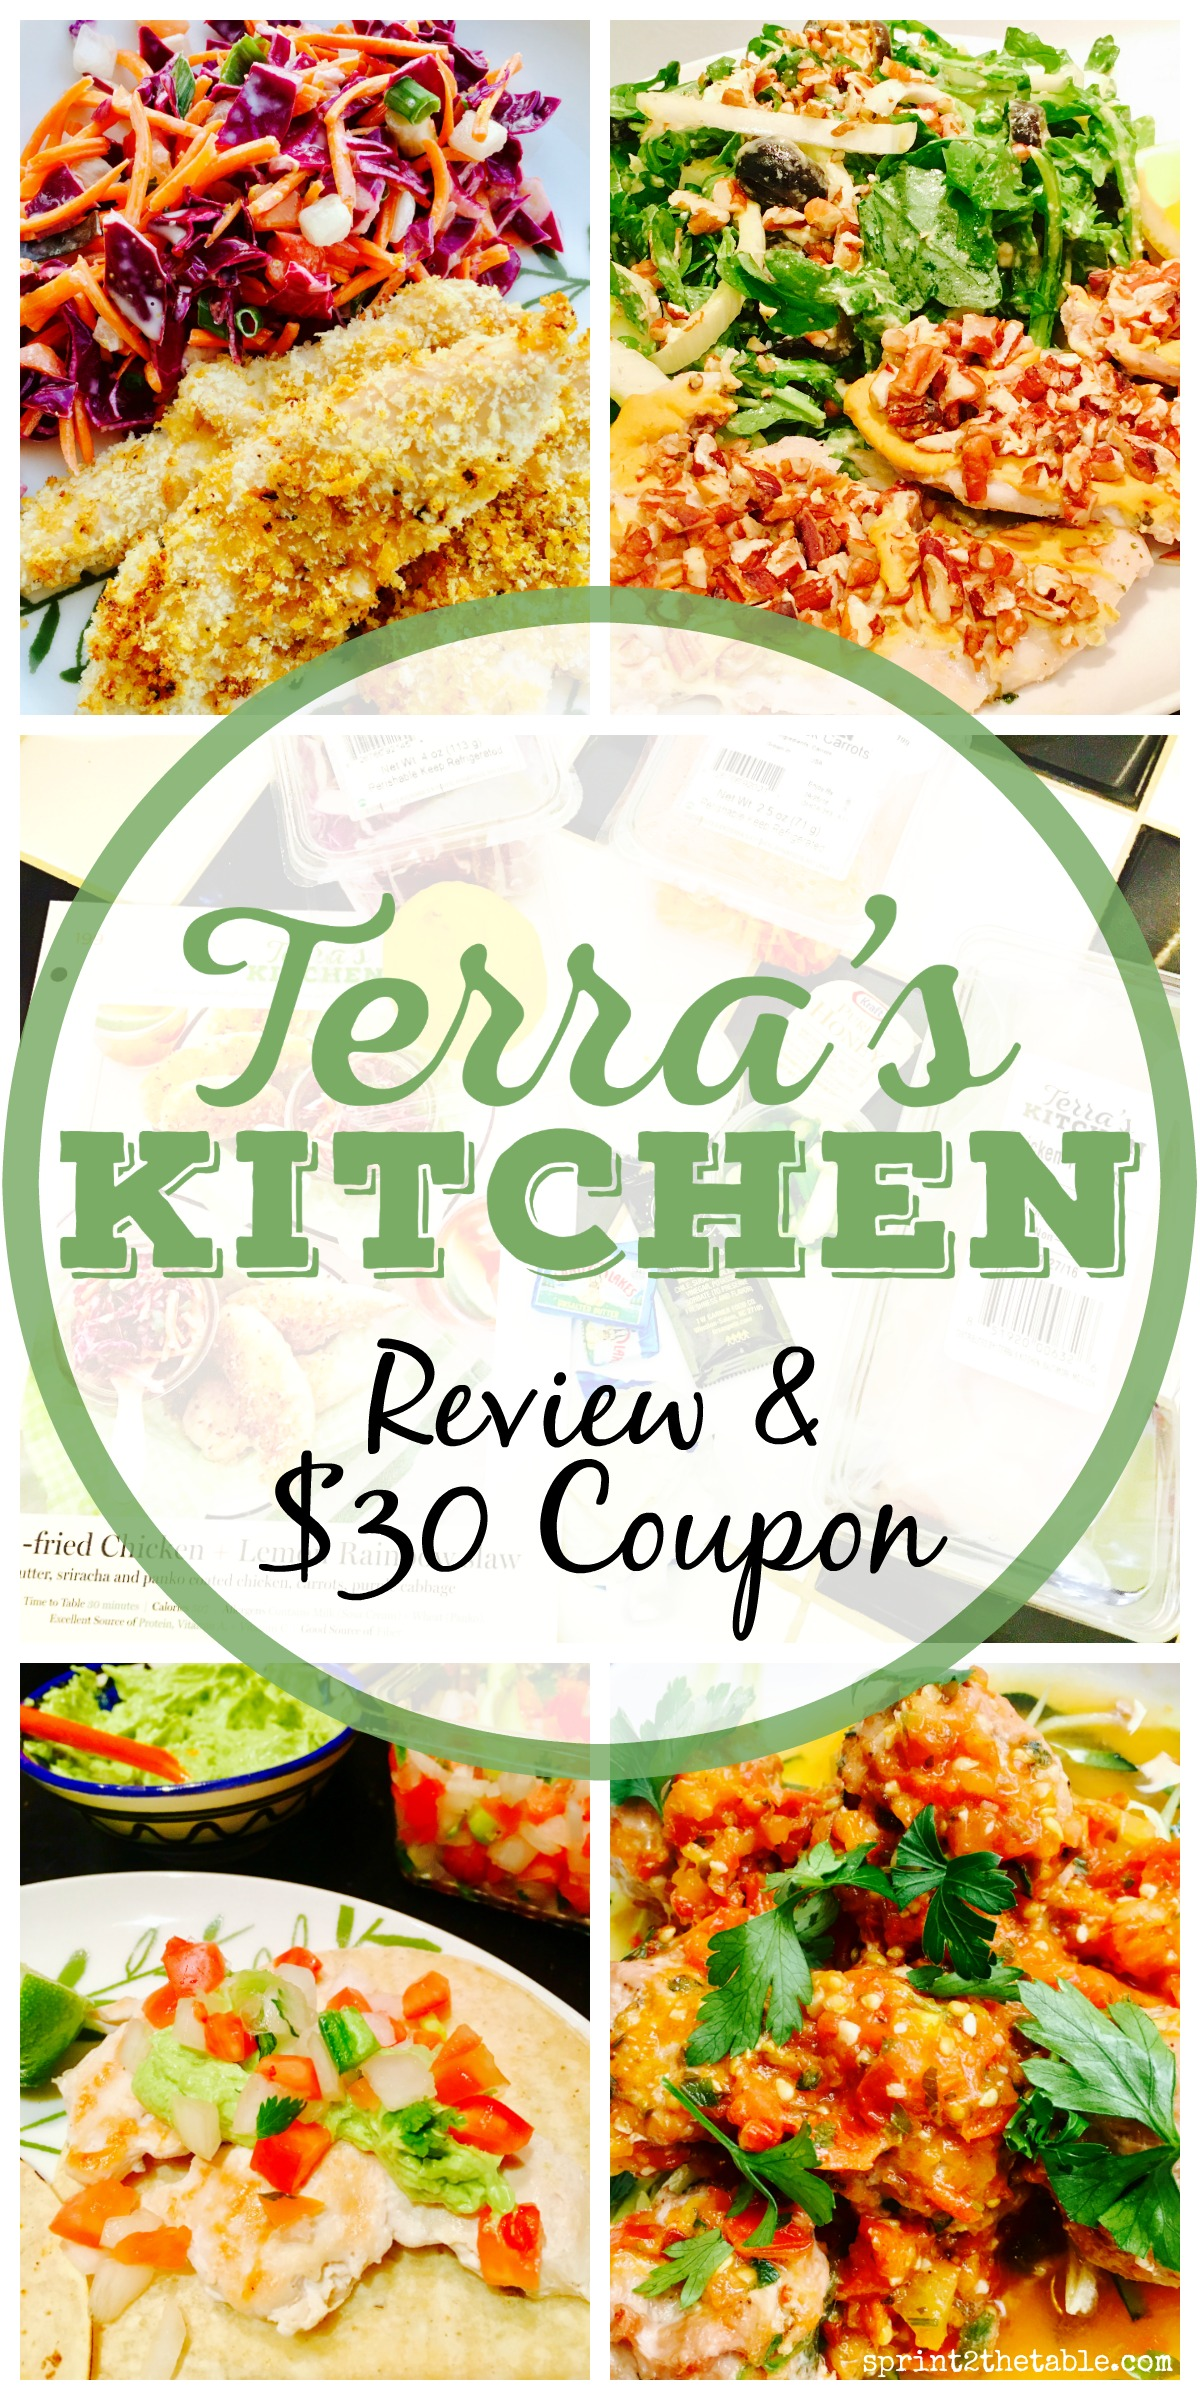 Terras kitchen healthy meal delivery coupon code sprint 2 the table terras kitchen healthy meal delivery coupon code forumfinder Choice Image